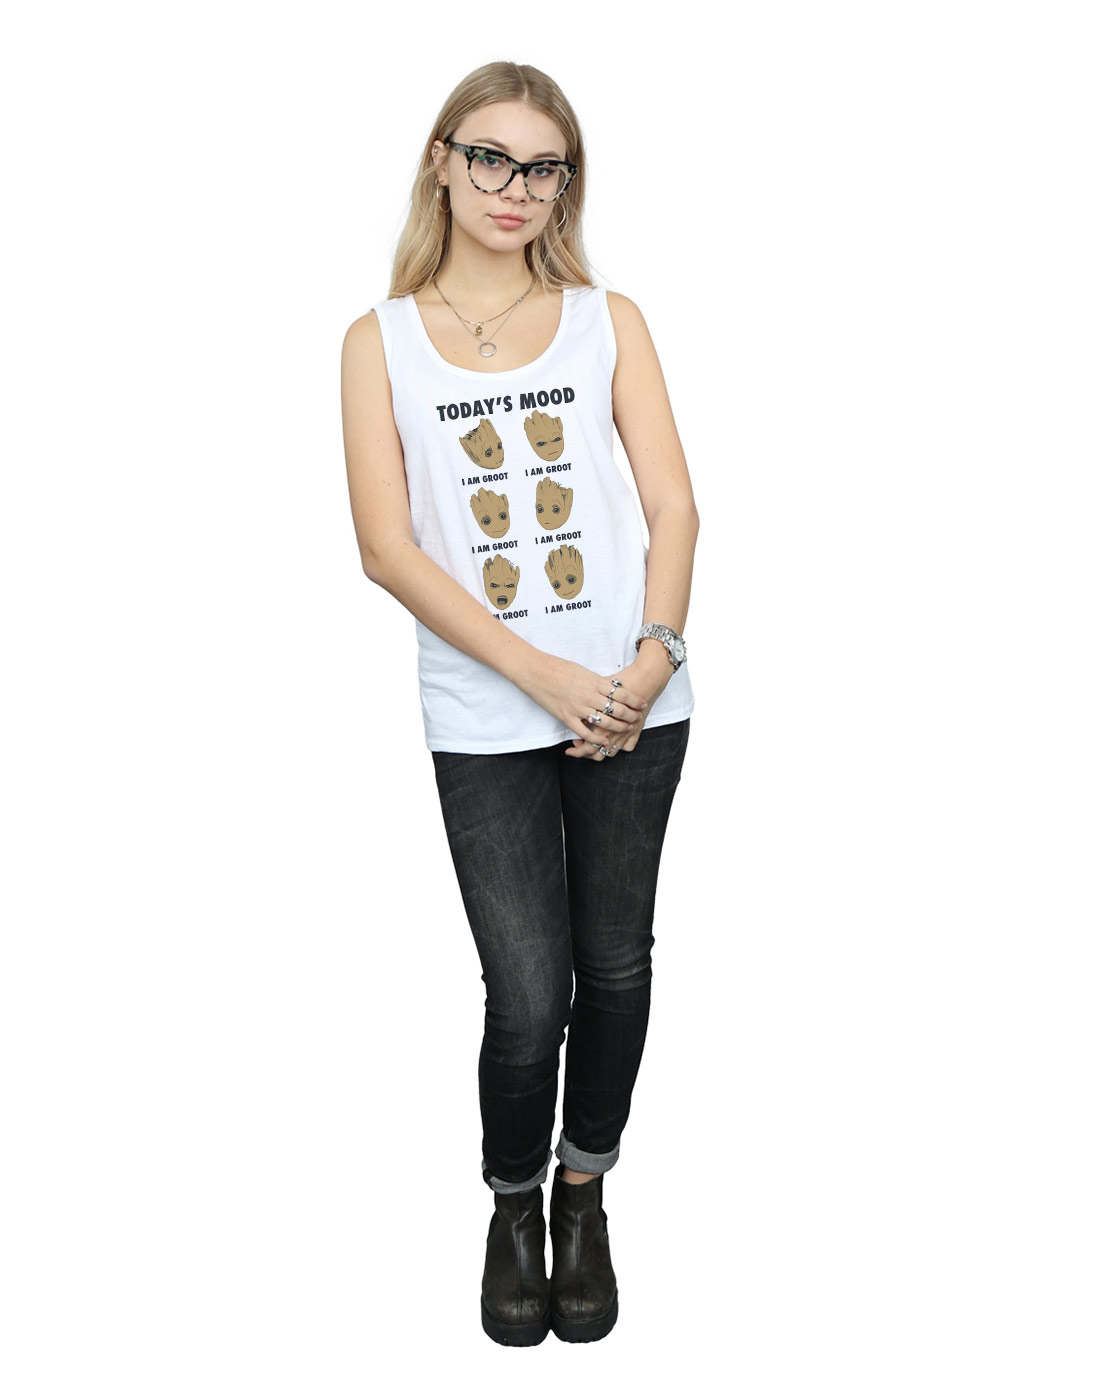 Marvel-Women-039-s-Guardians-of-the-Galaxy-Groot-Today-039-s-Mood-Tank-Top thumbnail 20